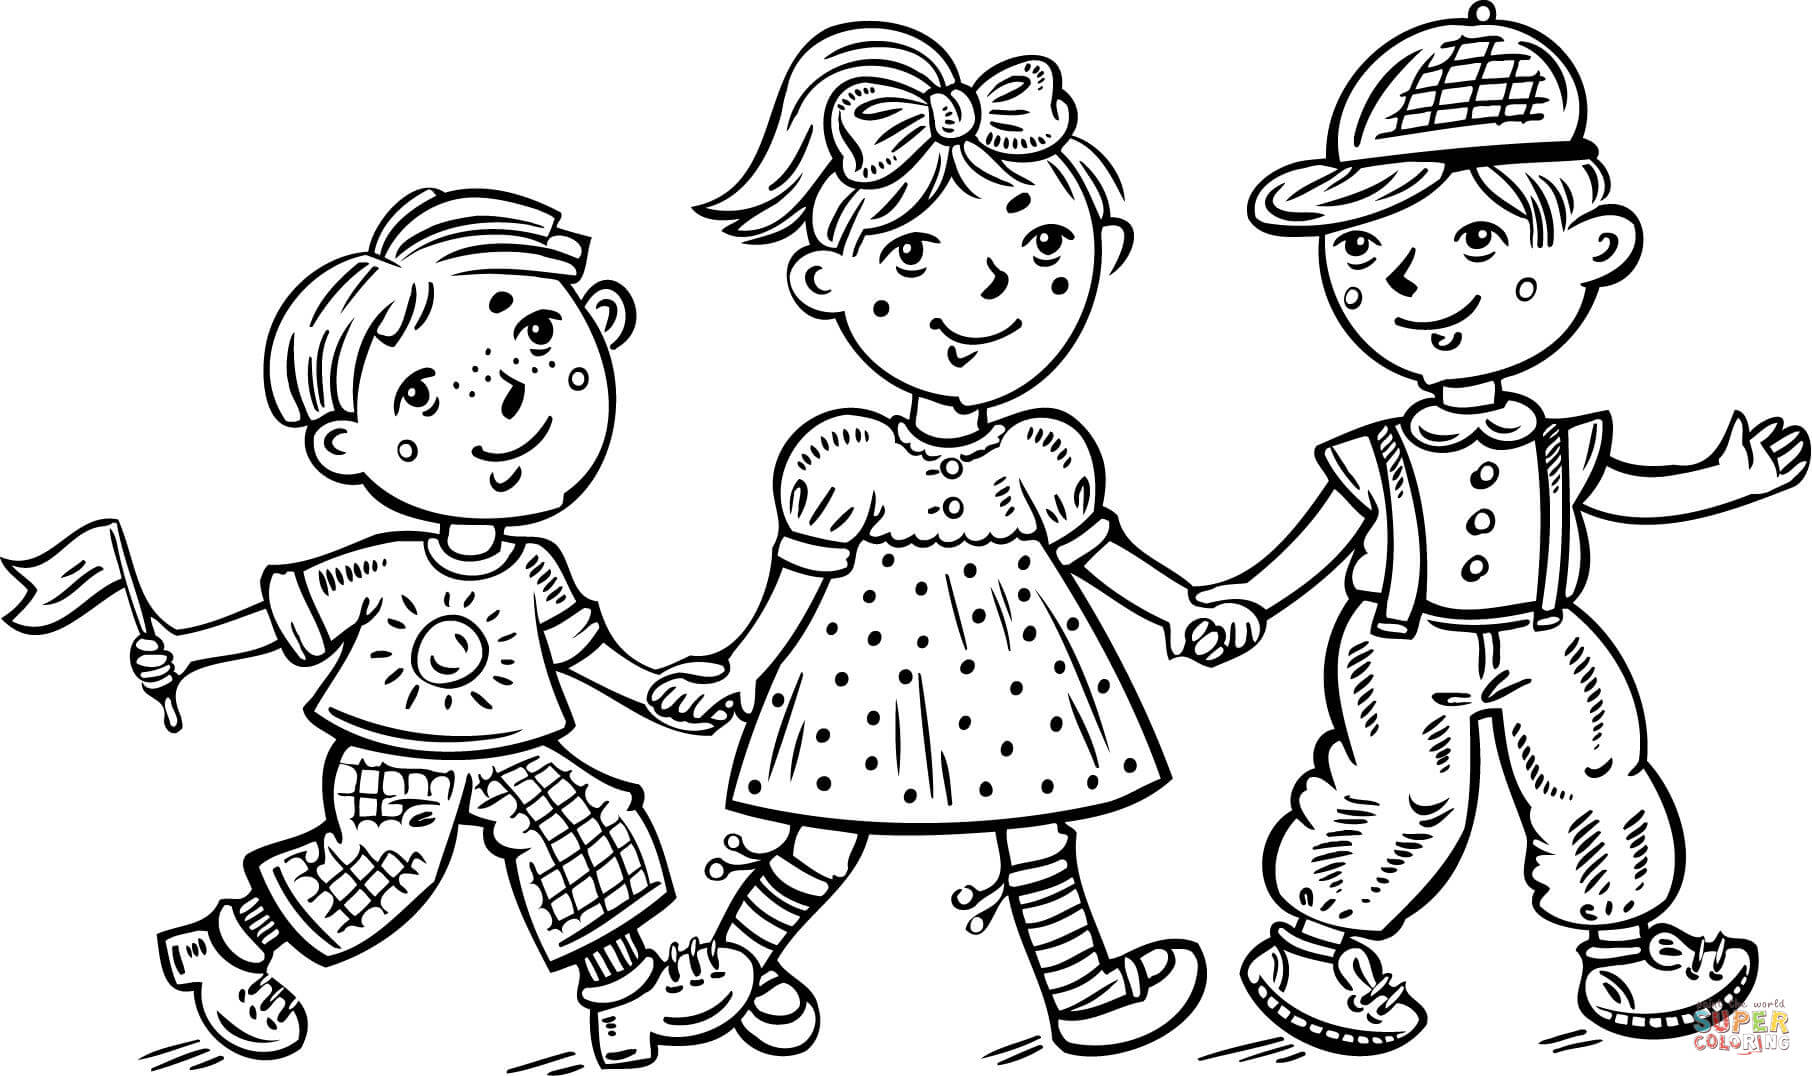 Coloring Page Boy Free Coloring Pages Download | Xsibe marvel ...